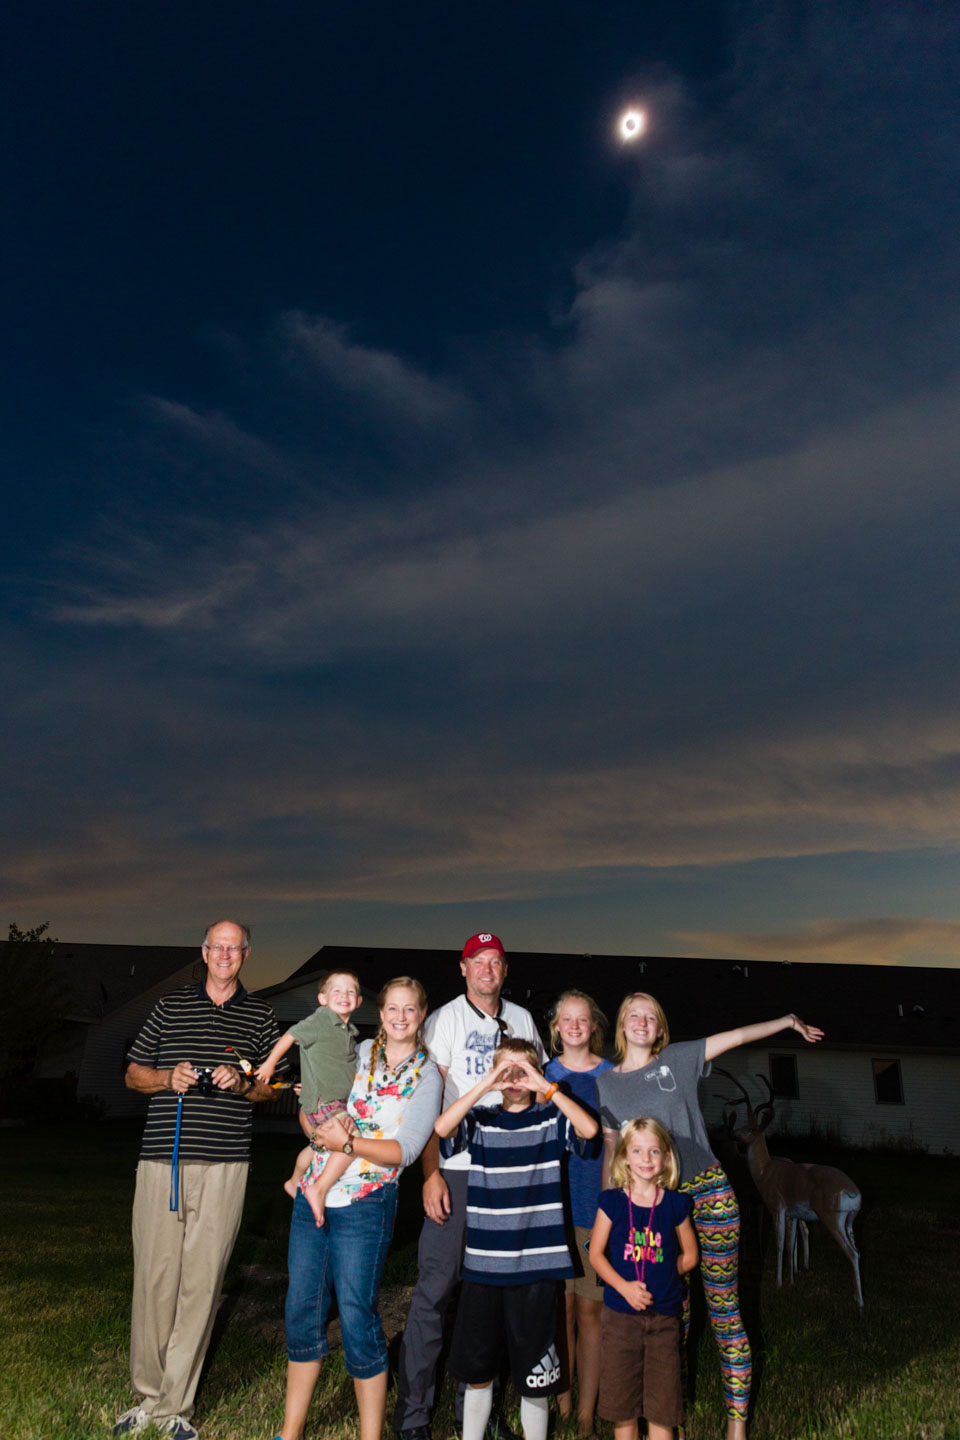 An impromptu family photo with the total solar eclipse